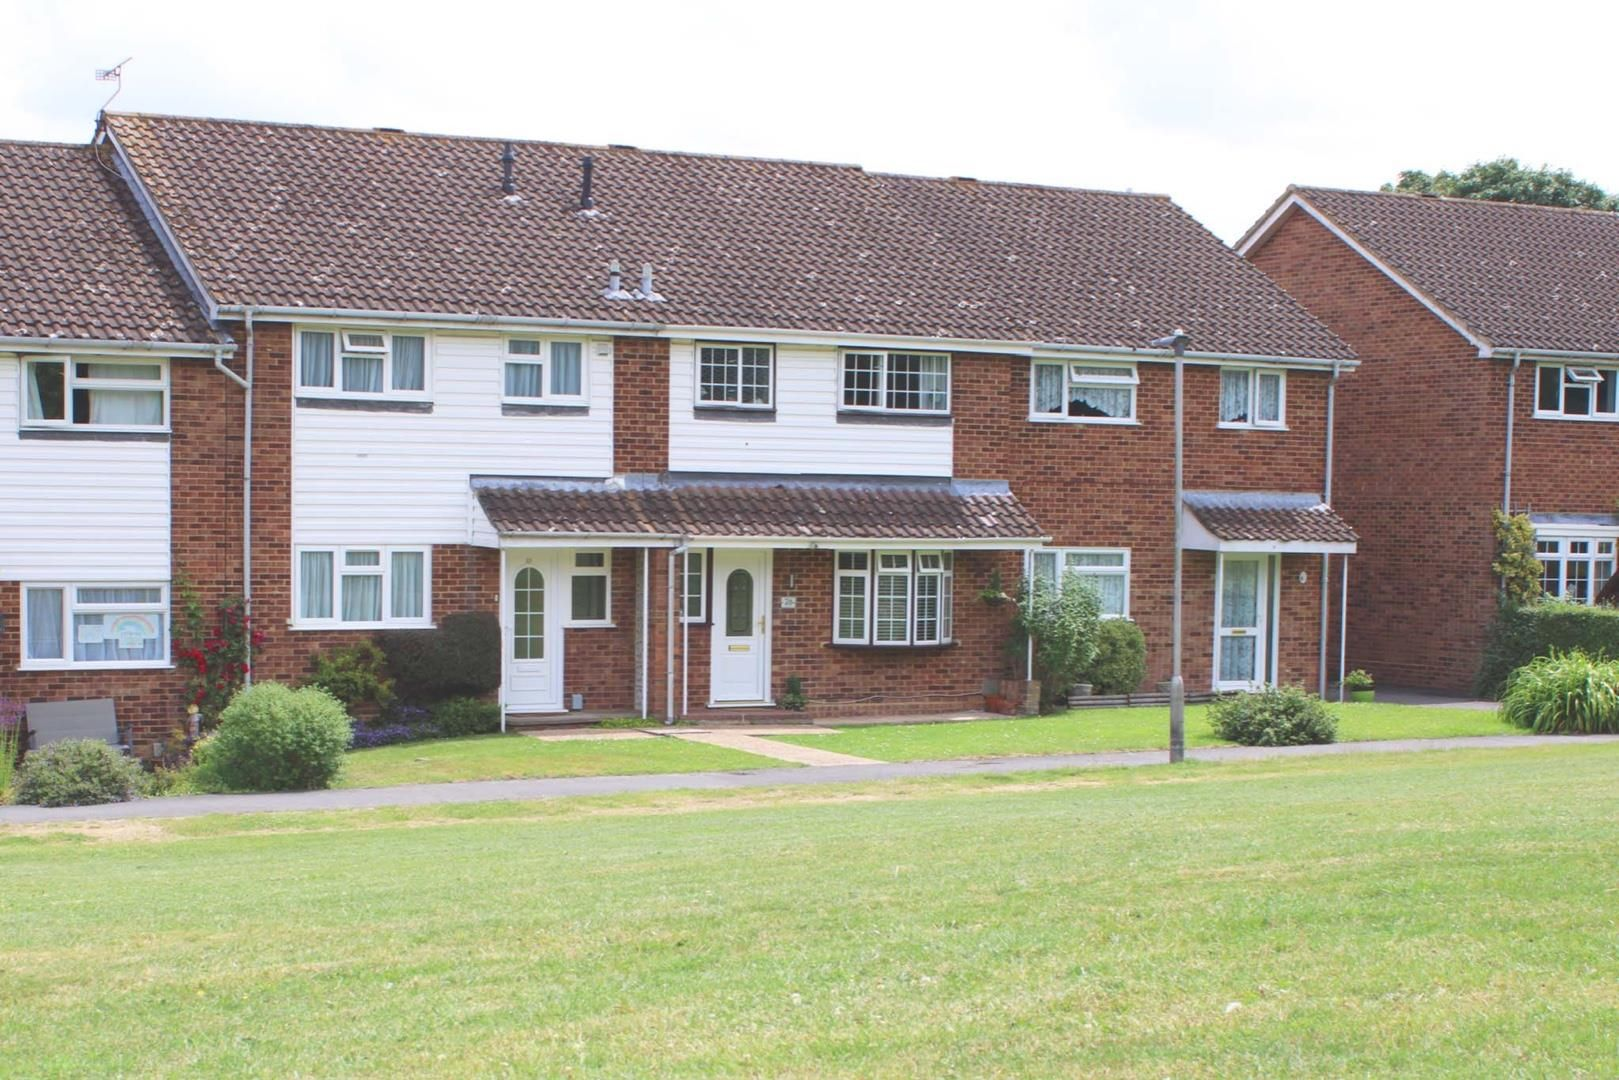 3 bed terraced for sale in Home Farm - Property Image 1